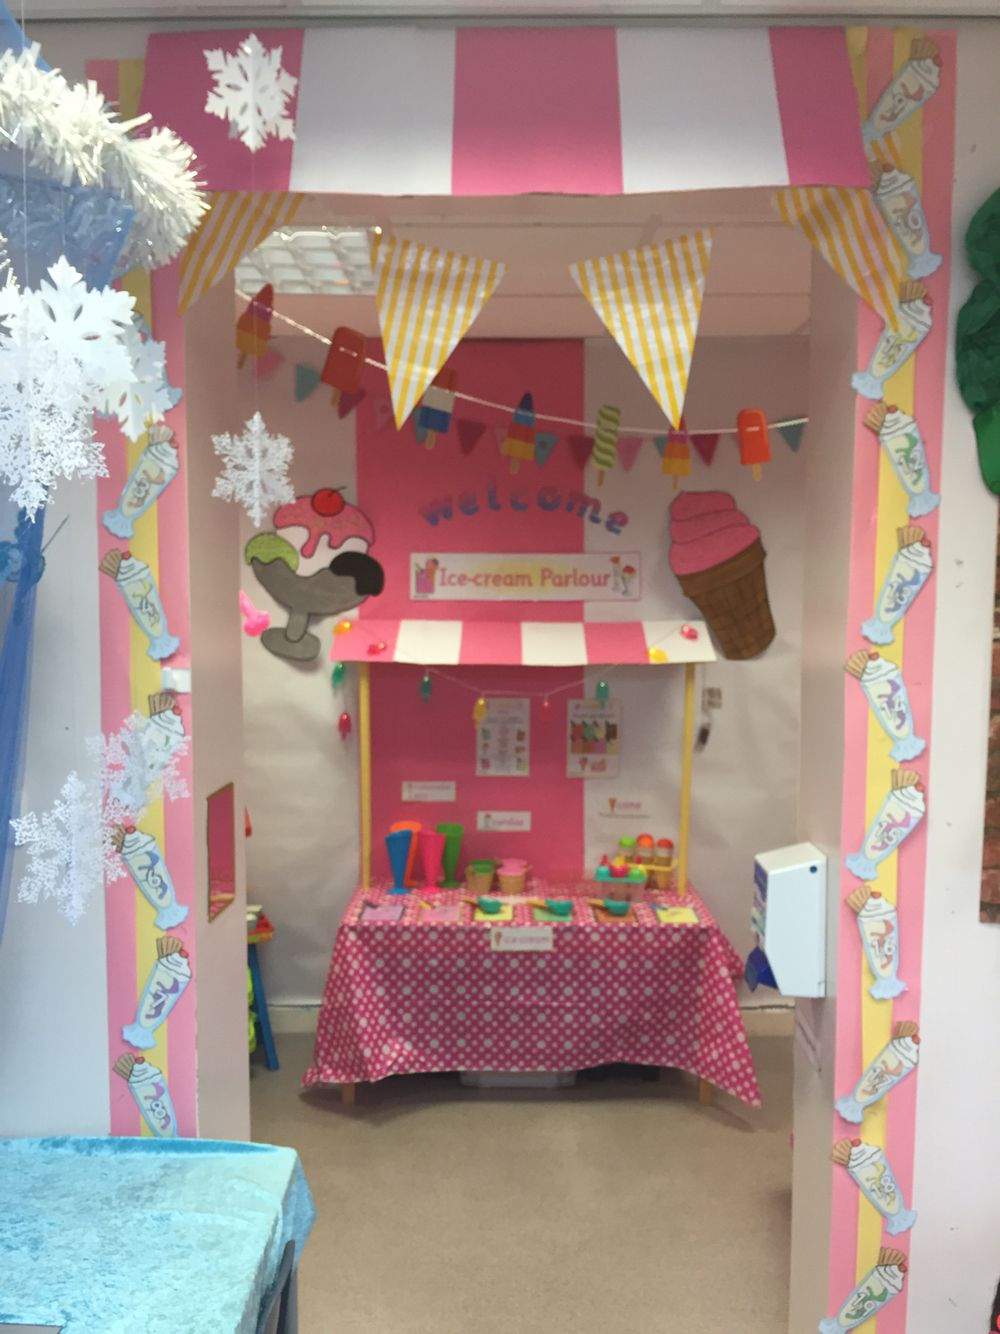 Classroom Valentines Design ~ Ice cream parlour role play eyfs bharti